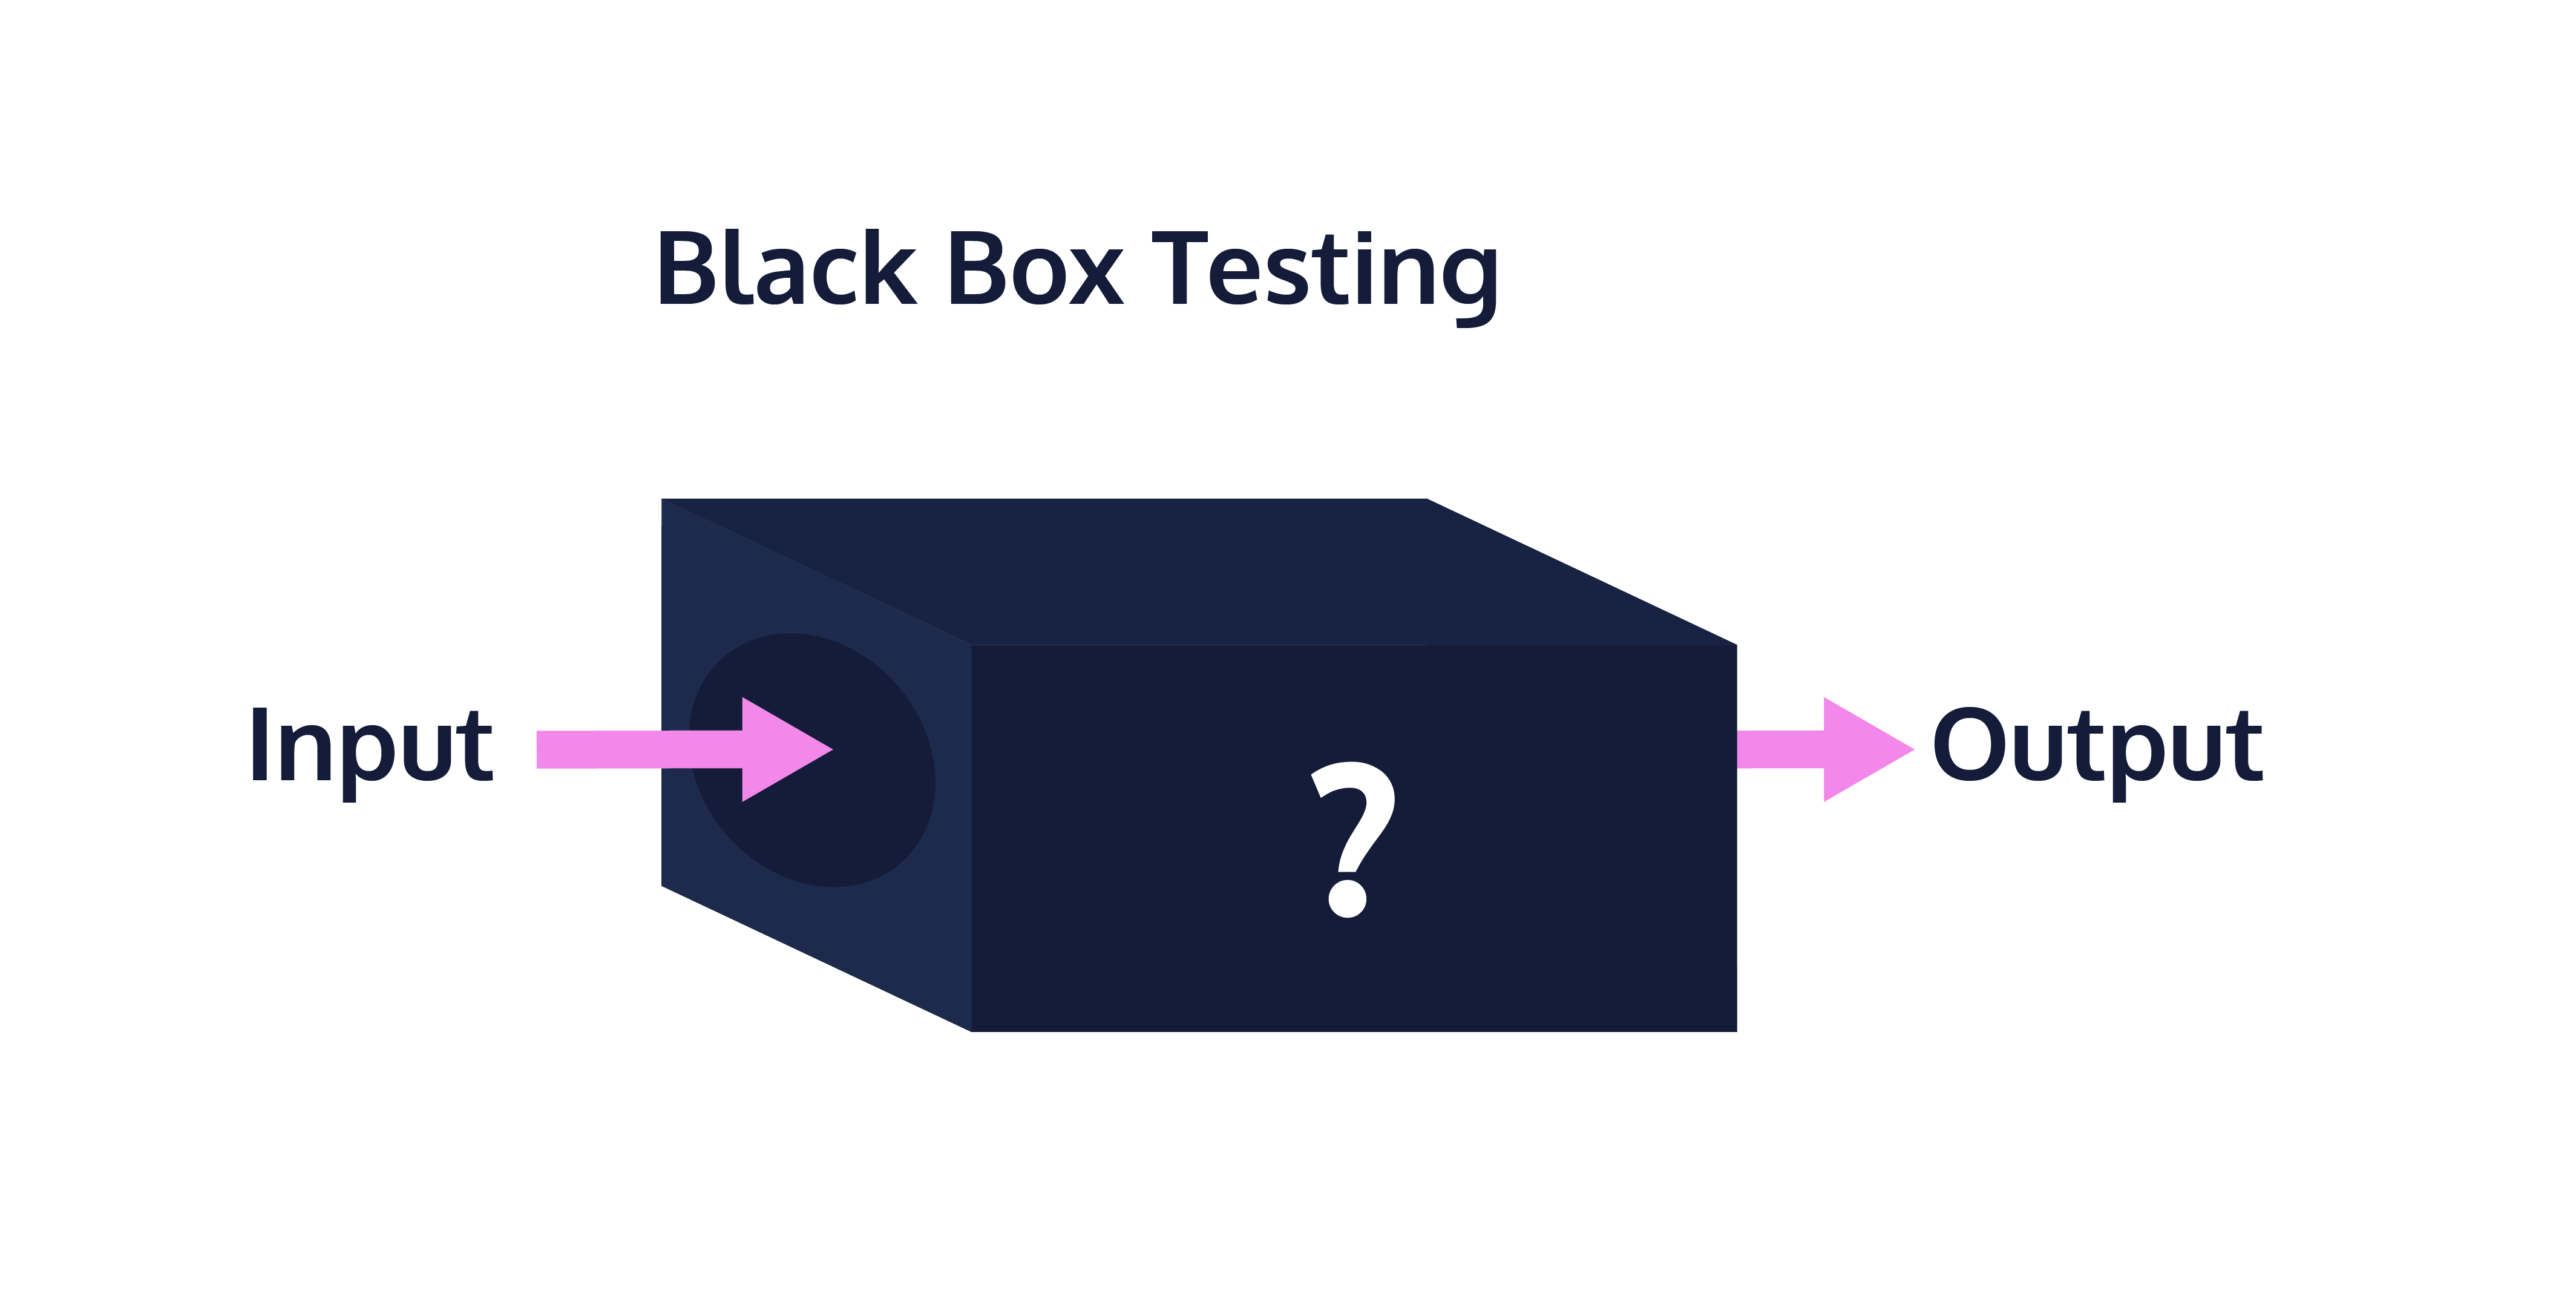 Image of a black box - input goes into a black box and output comes out.